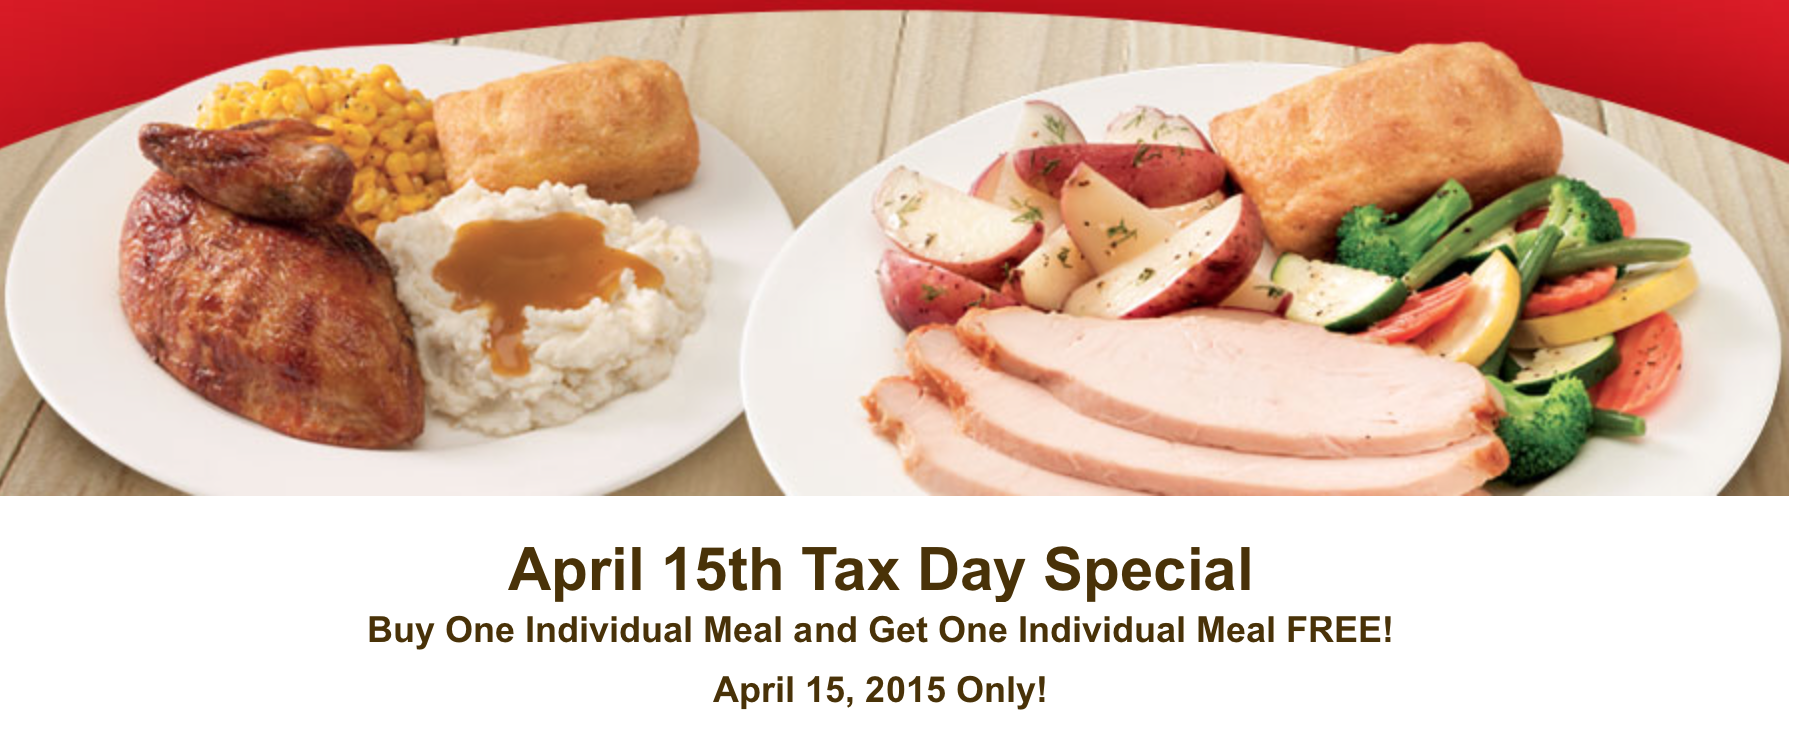 Boston Market Buy One Individual Meal Get One FREE (4/15